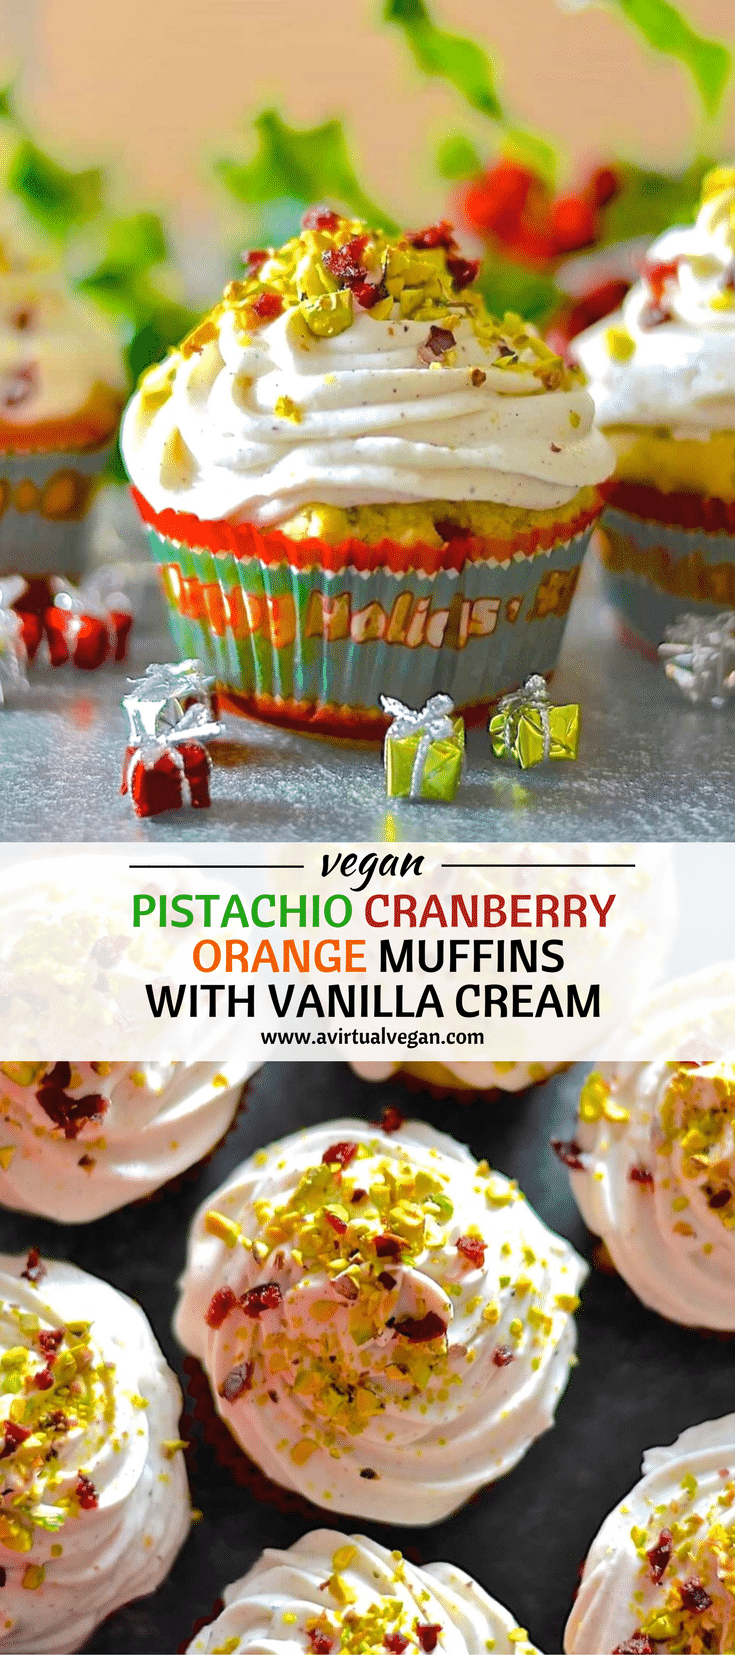 Festive, fragrant & delicious cranberry orange & pistachio muffins! Orange scented, studded with juicy, jewel red cranberries & crunchy, vibrantly green pistachios & finished with a swirl of vanilla cream.